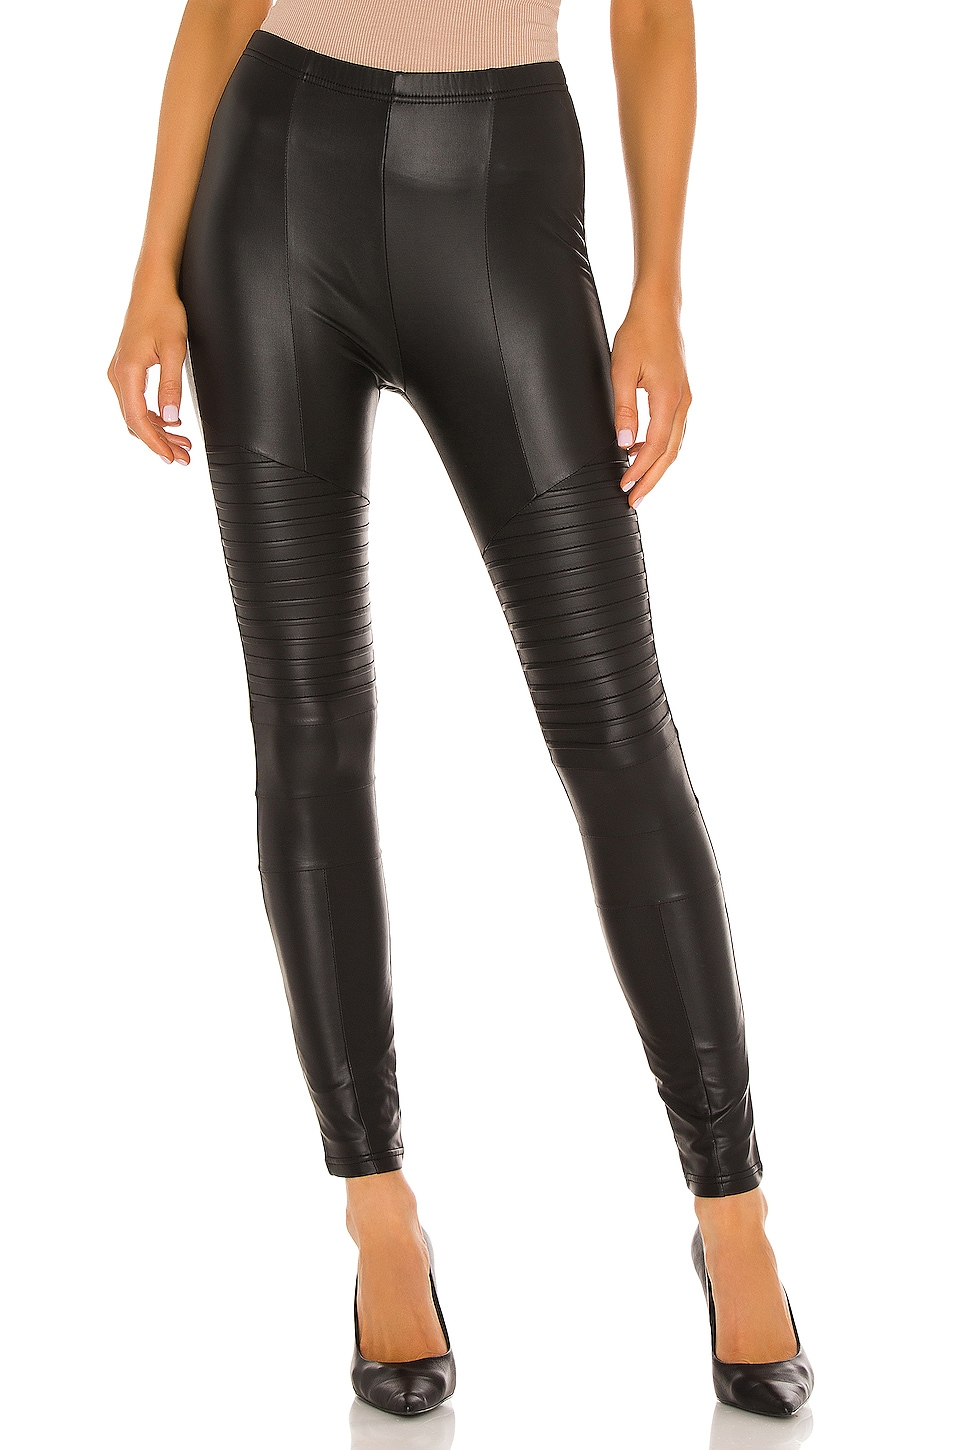 Plush LEGGINGS MOTO